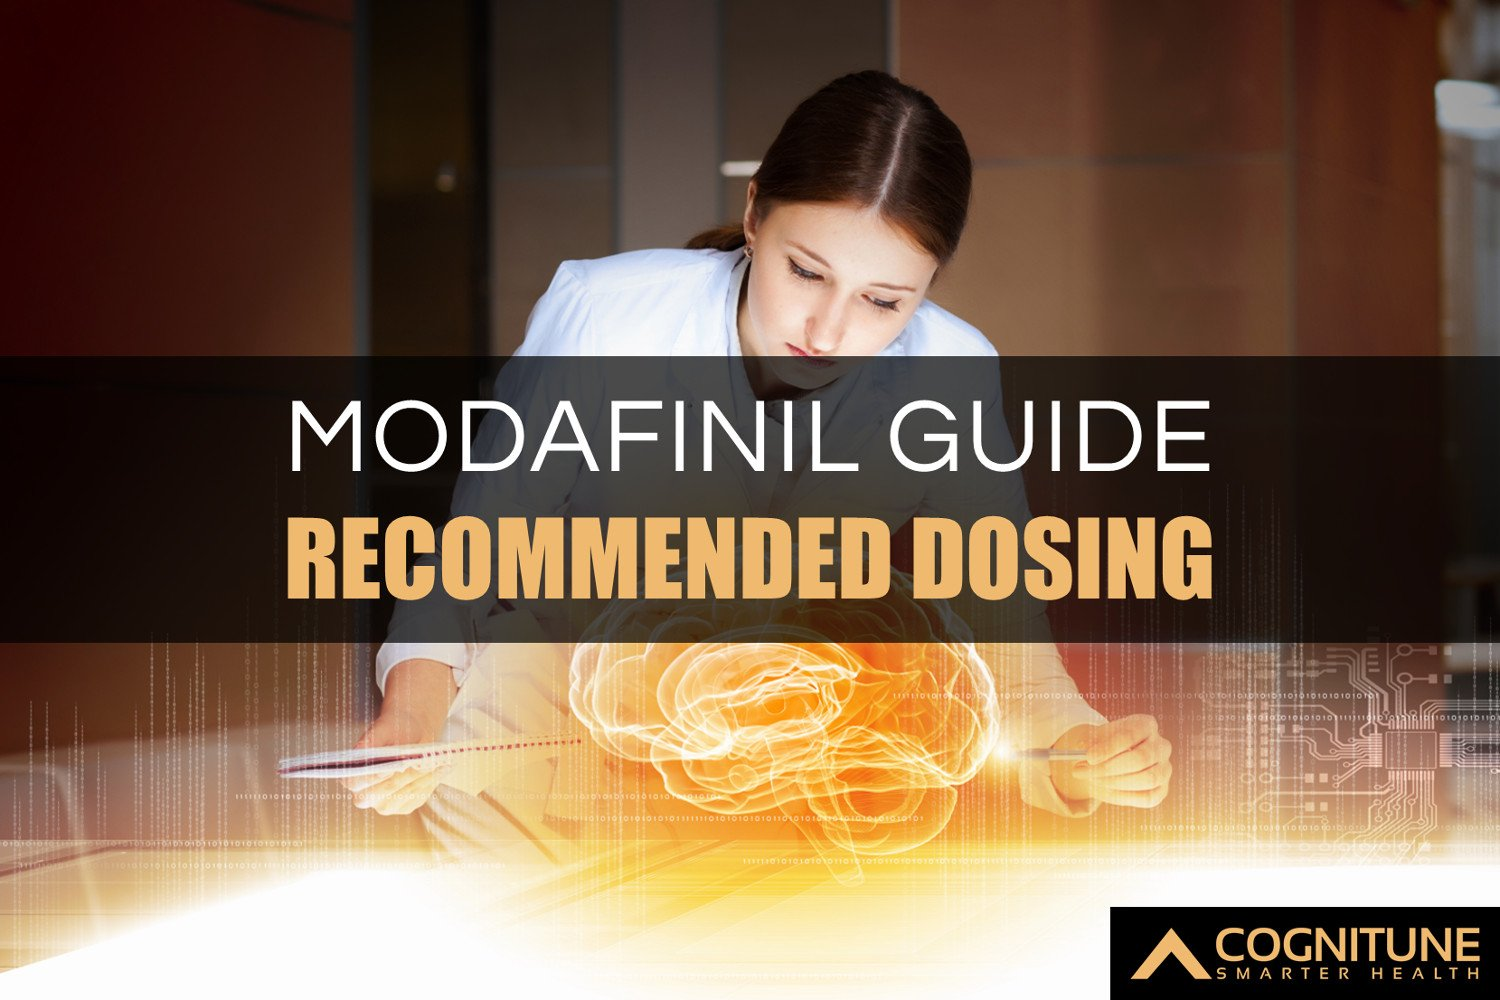 Modafinil Dosage Guide 50mg 100mg 200mg Or 400mg Dose